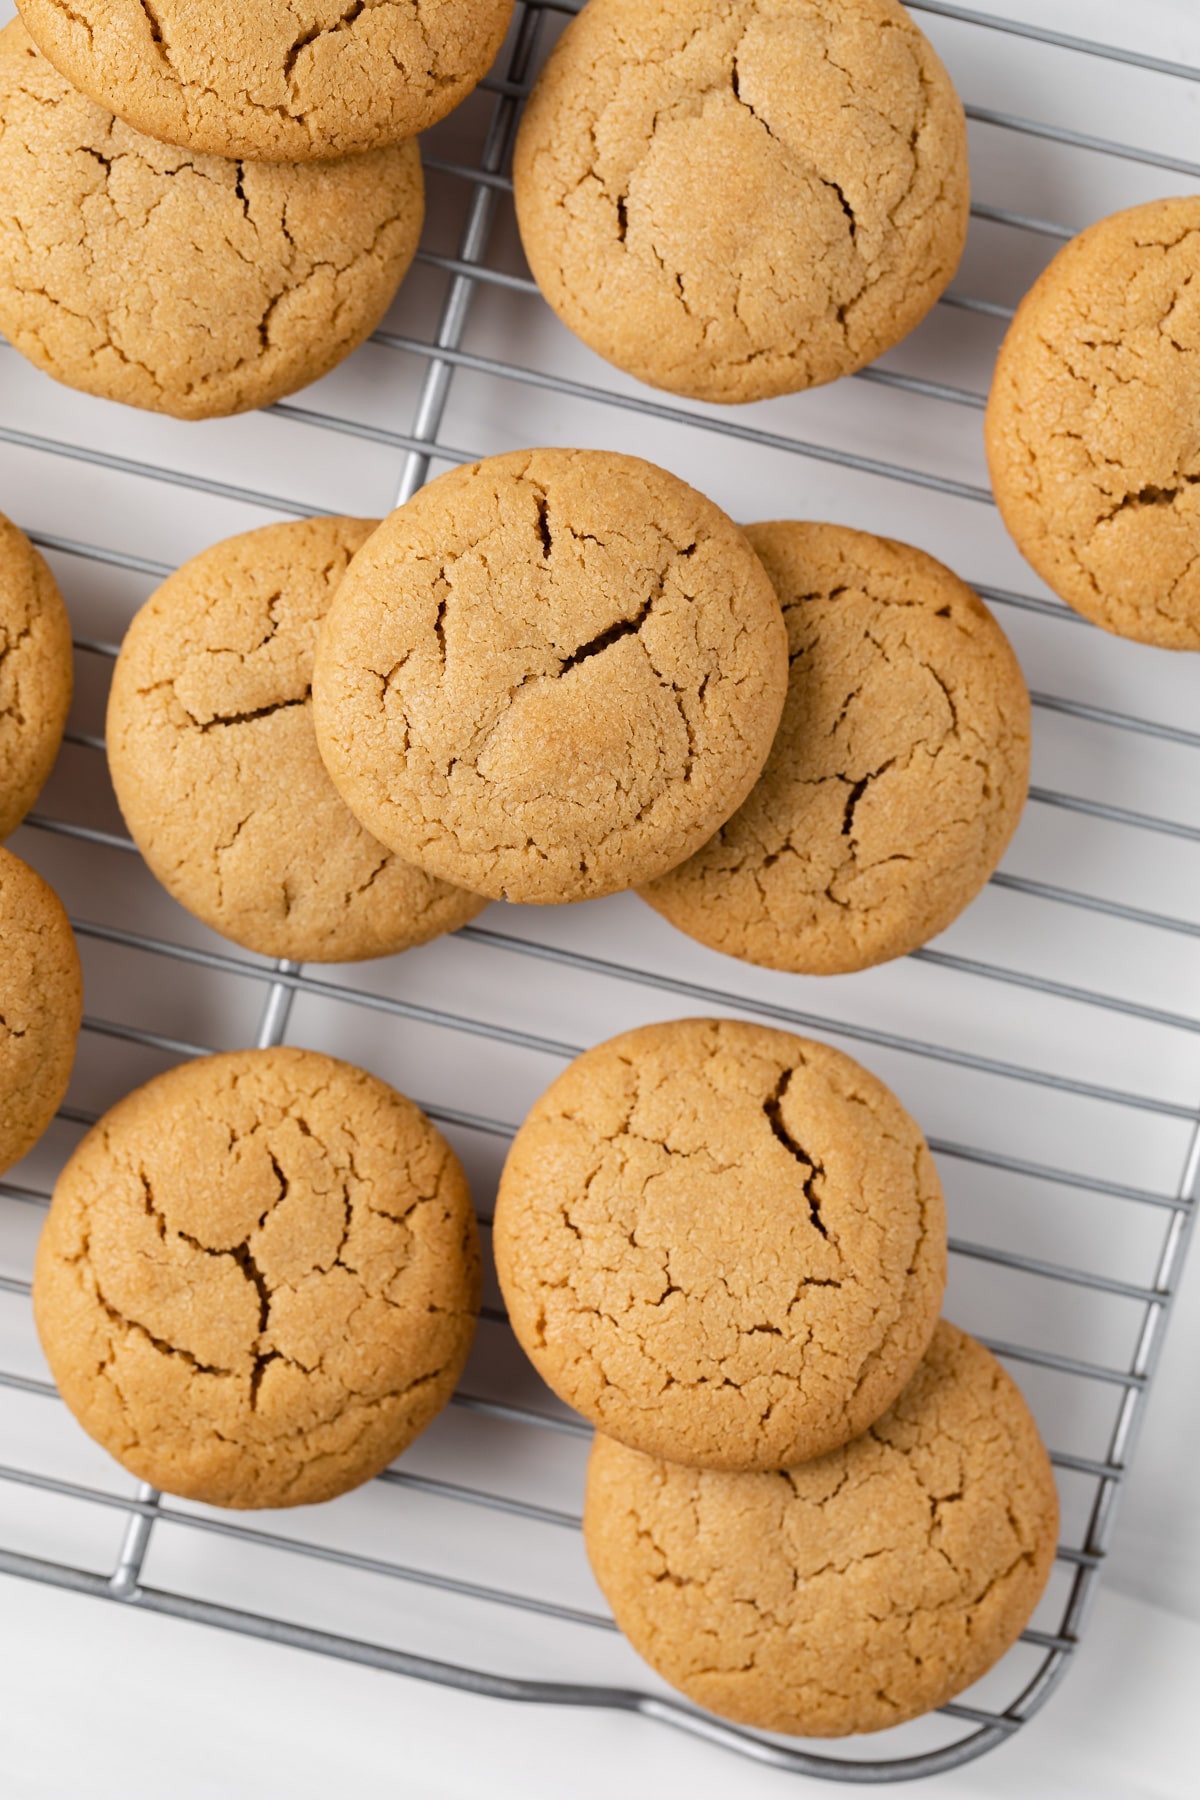 peanut butter cookies scattered on a wire rack